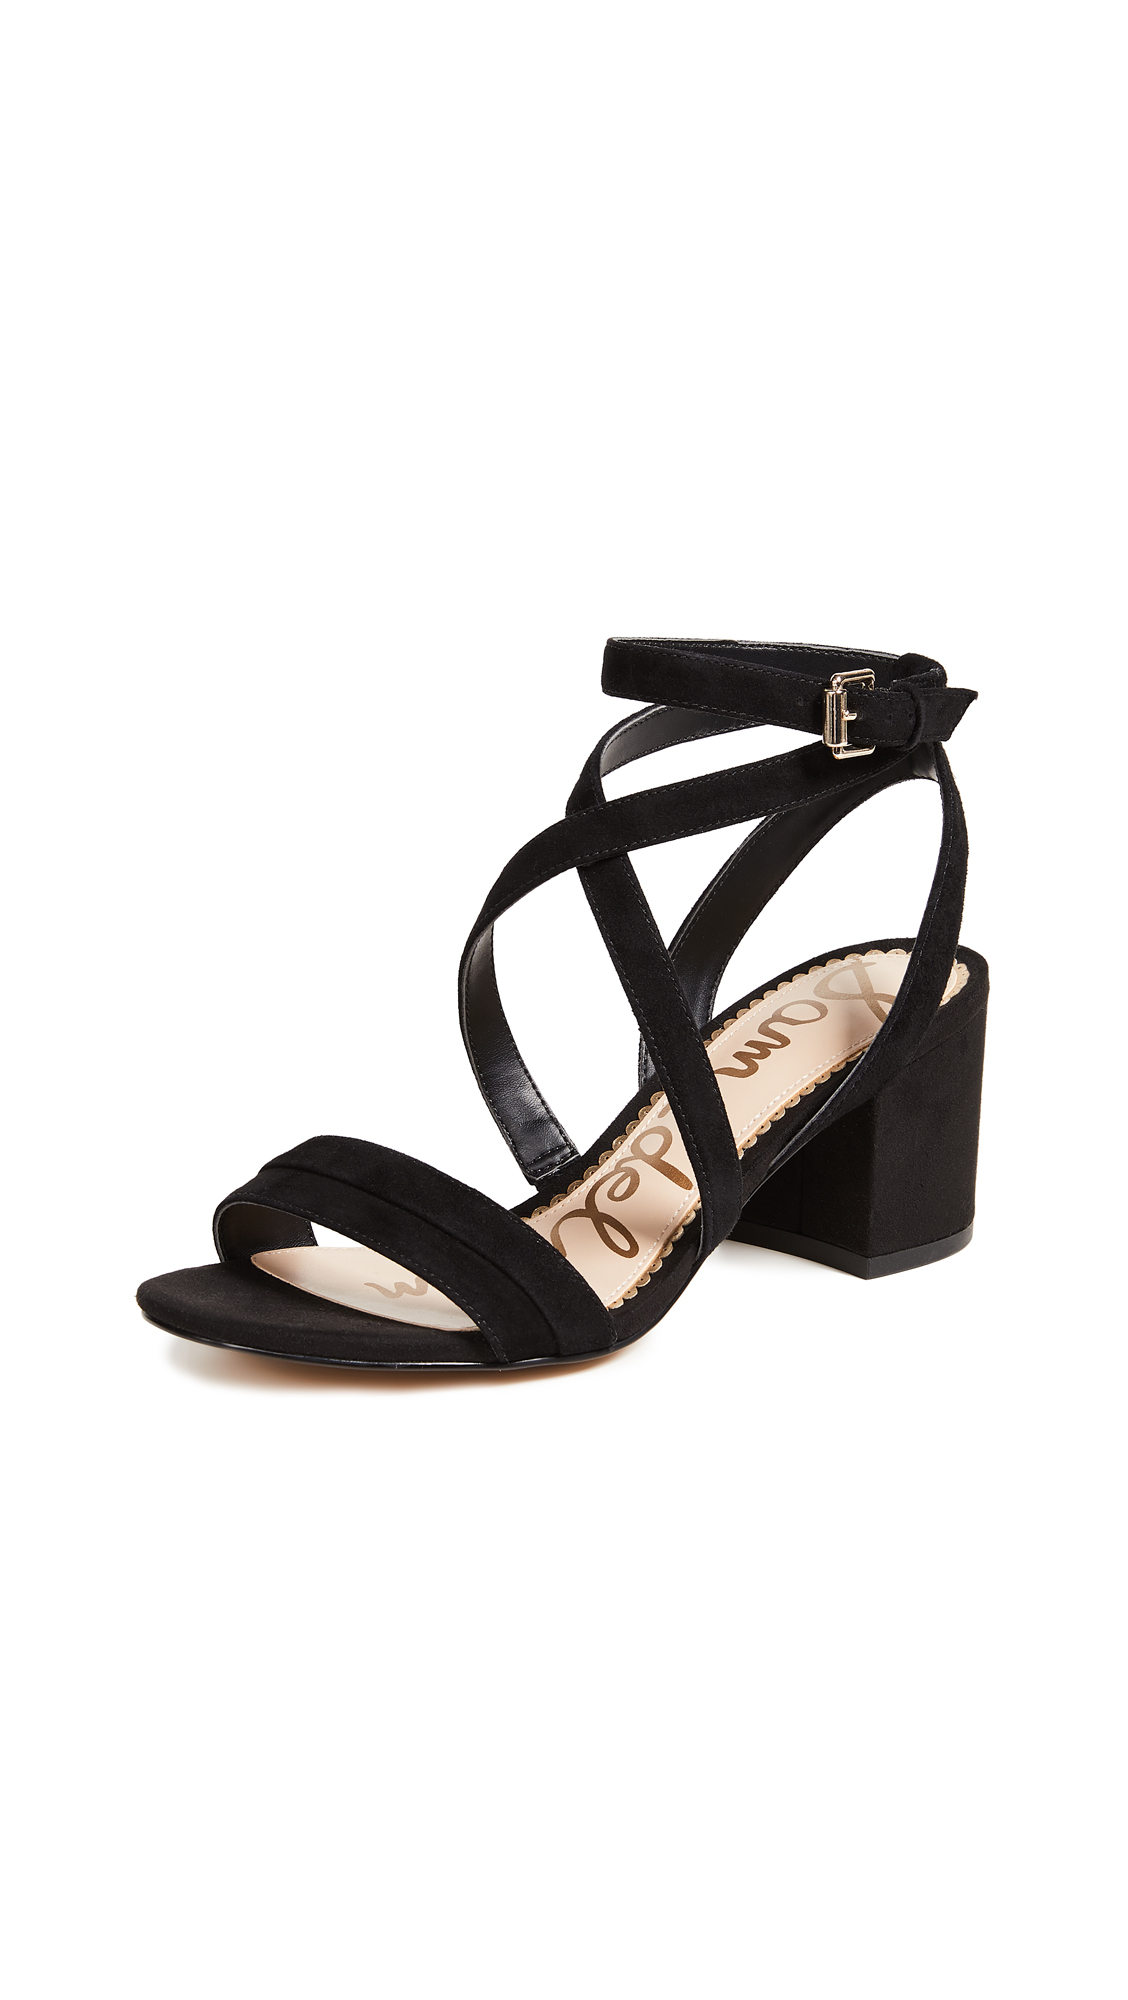 Sam Edelman Sammy Sandals In Black